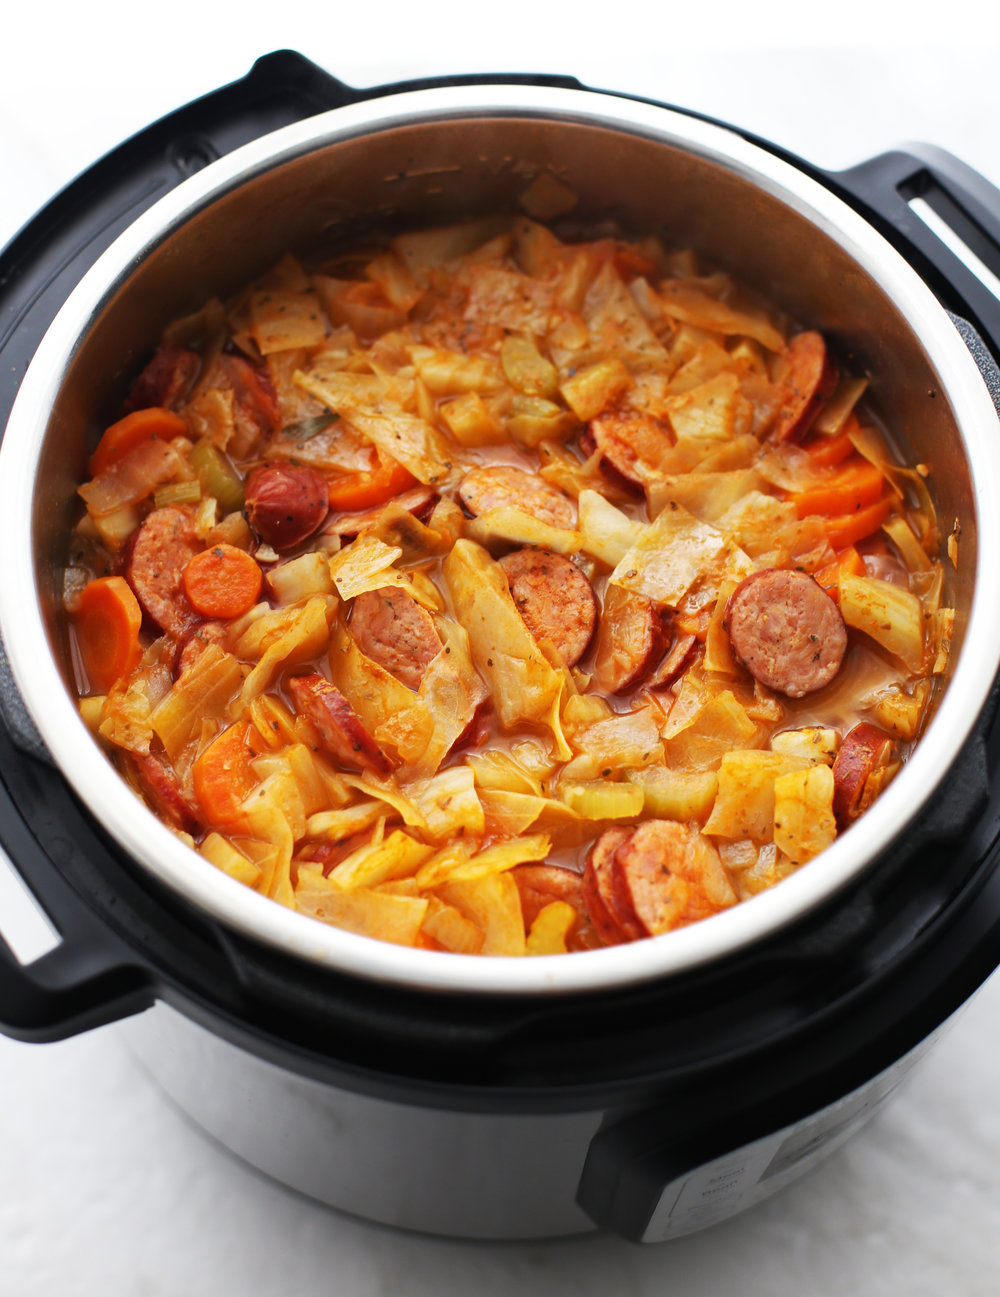 Hearty fennel, cabbage, and sausage soup in an Instant Pot.